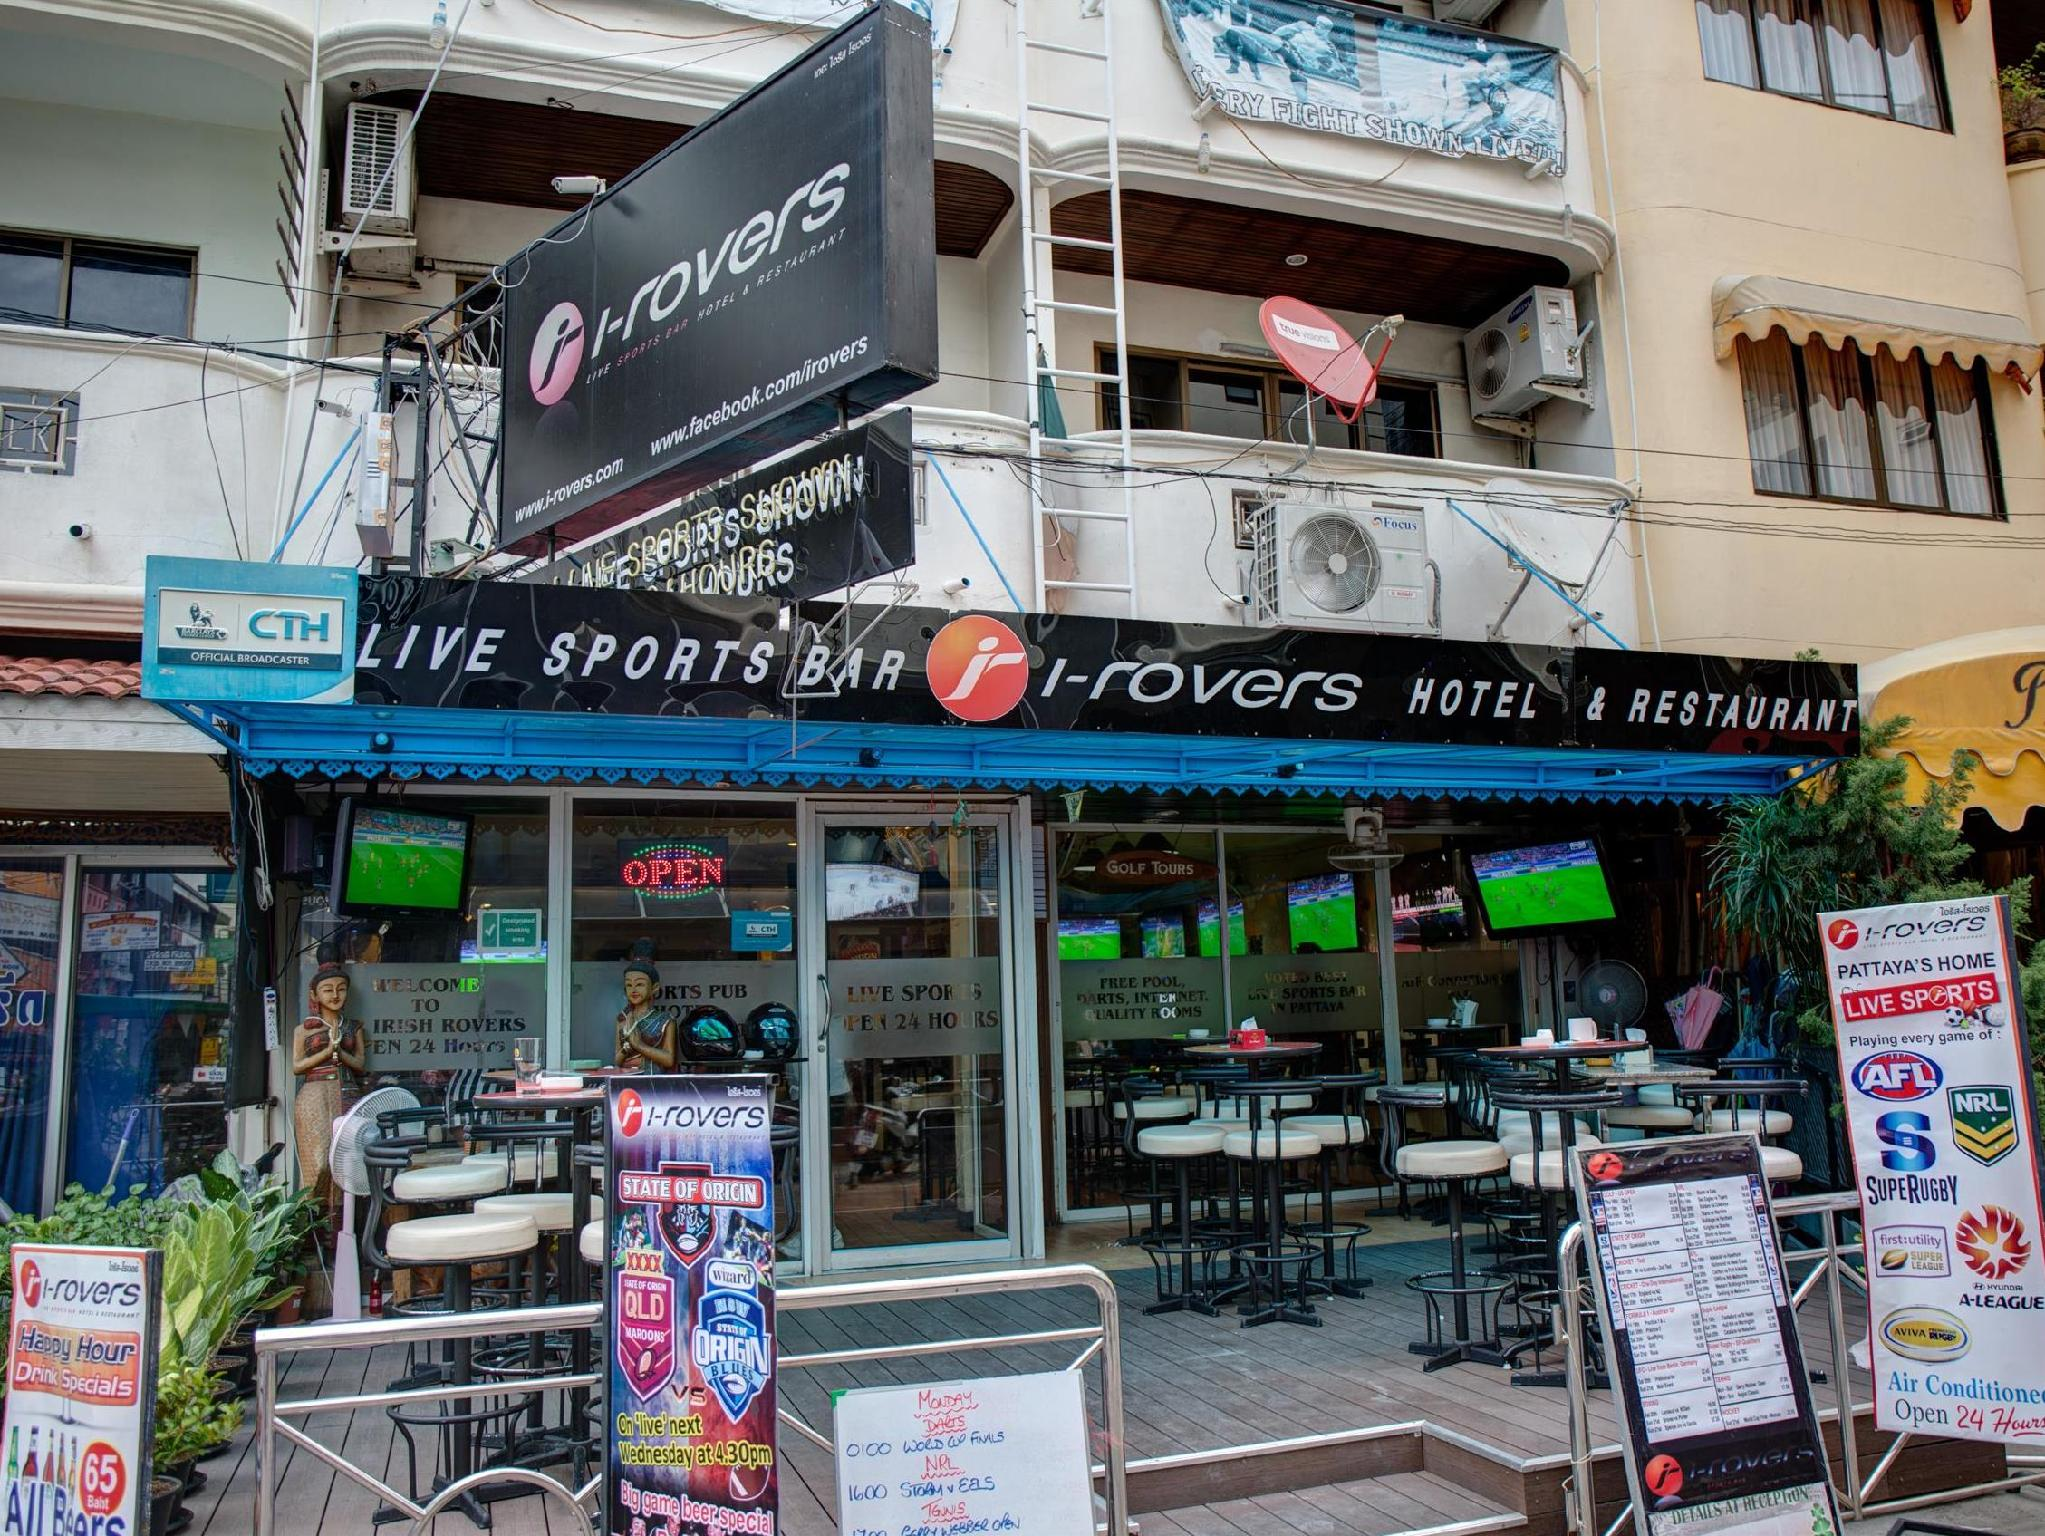 I Rovers Sports Bar And Hotel